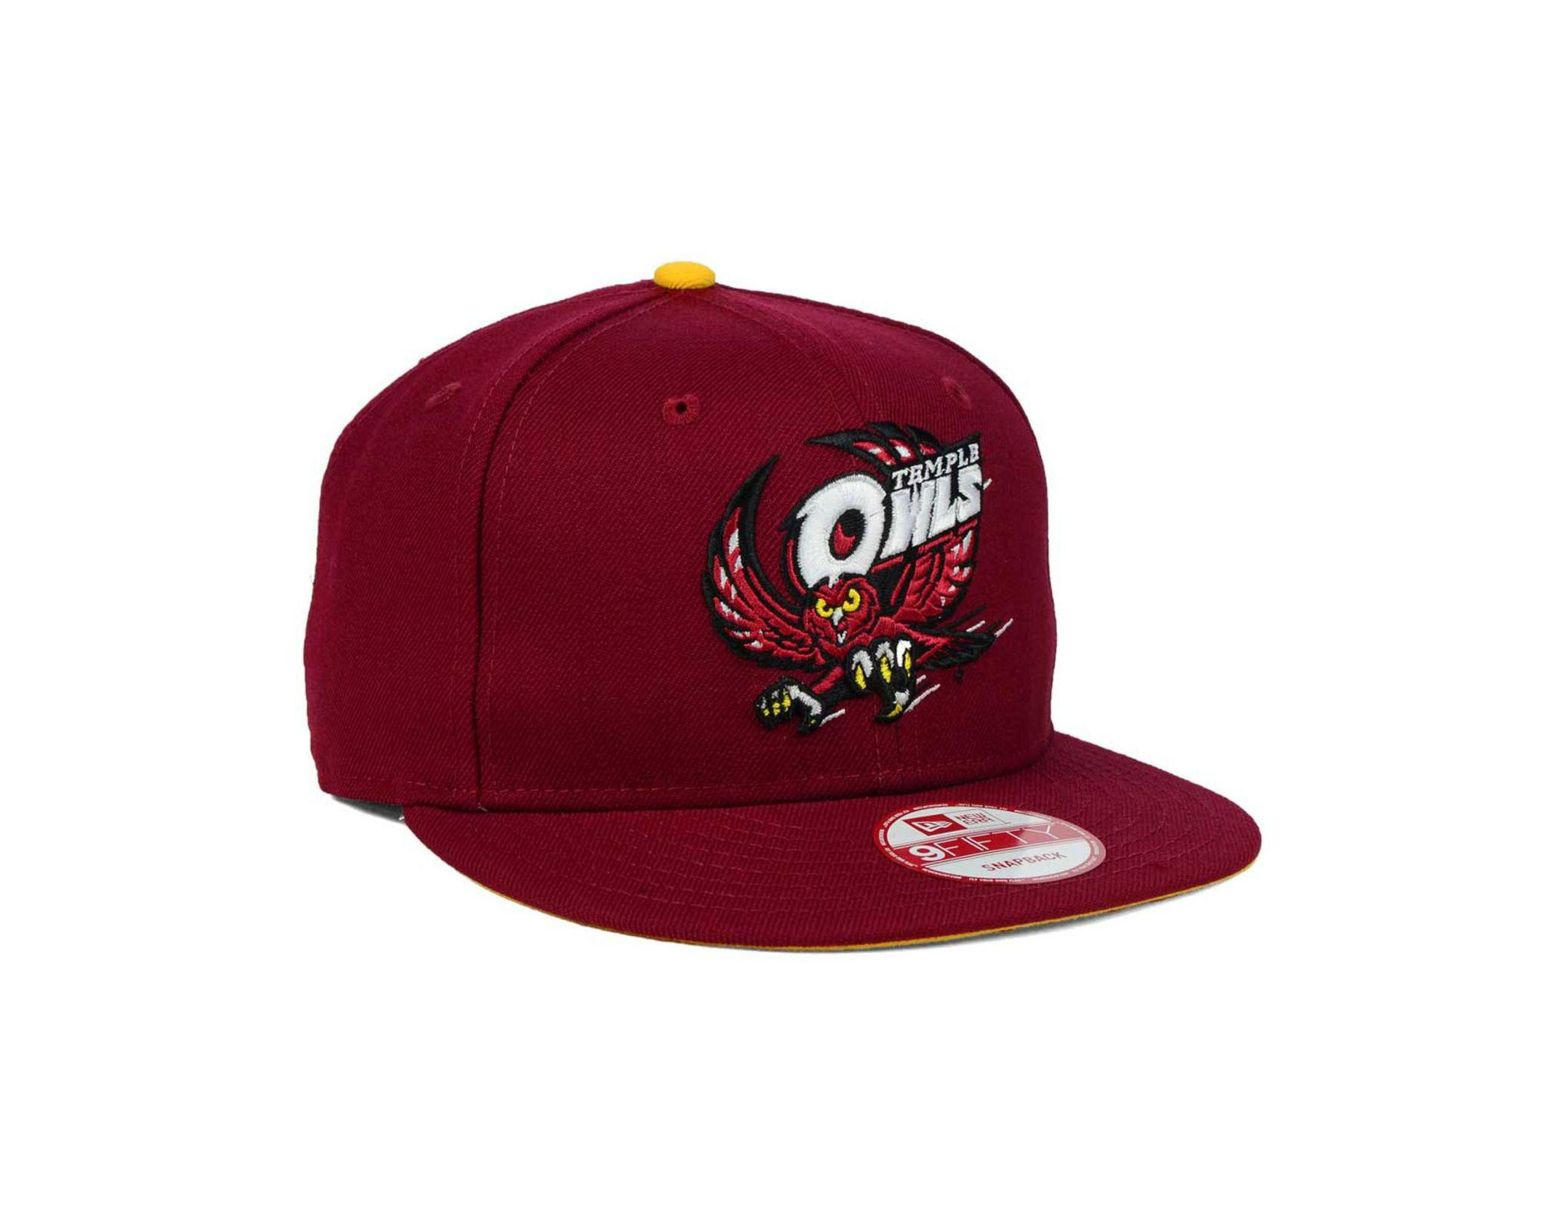 official photos e6906 7271d KTZ Temple Owls Core 9fifty Snapback Cap in Red for Men - Lyst